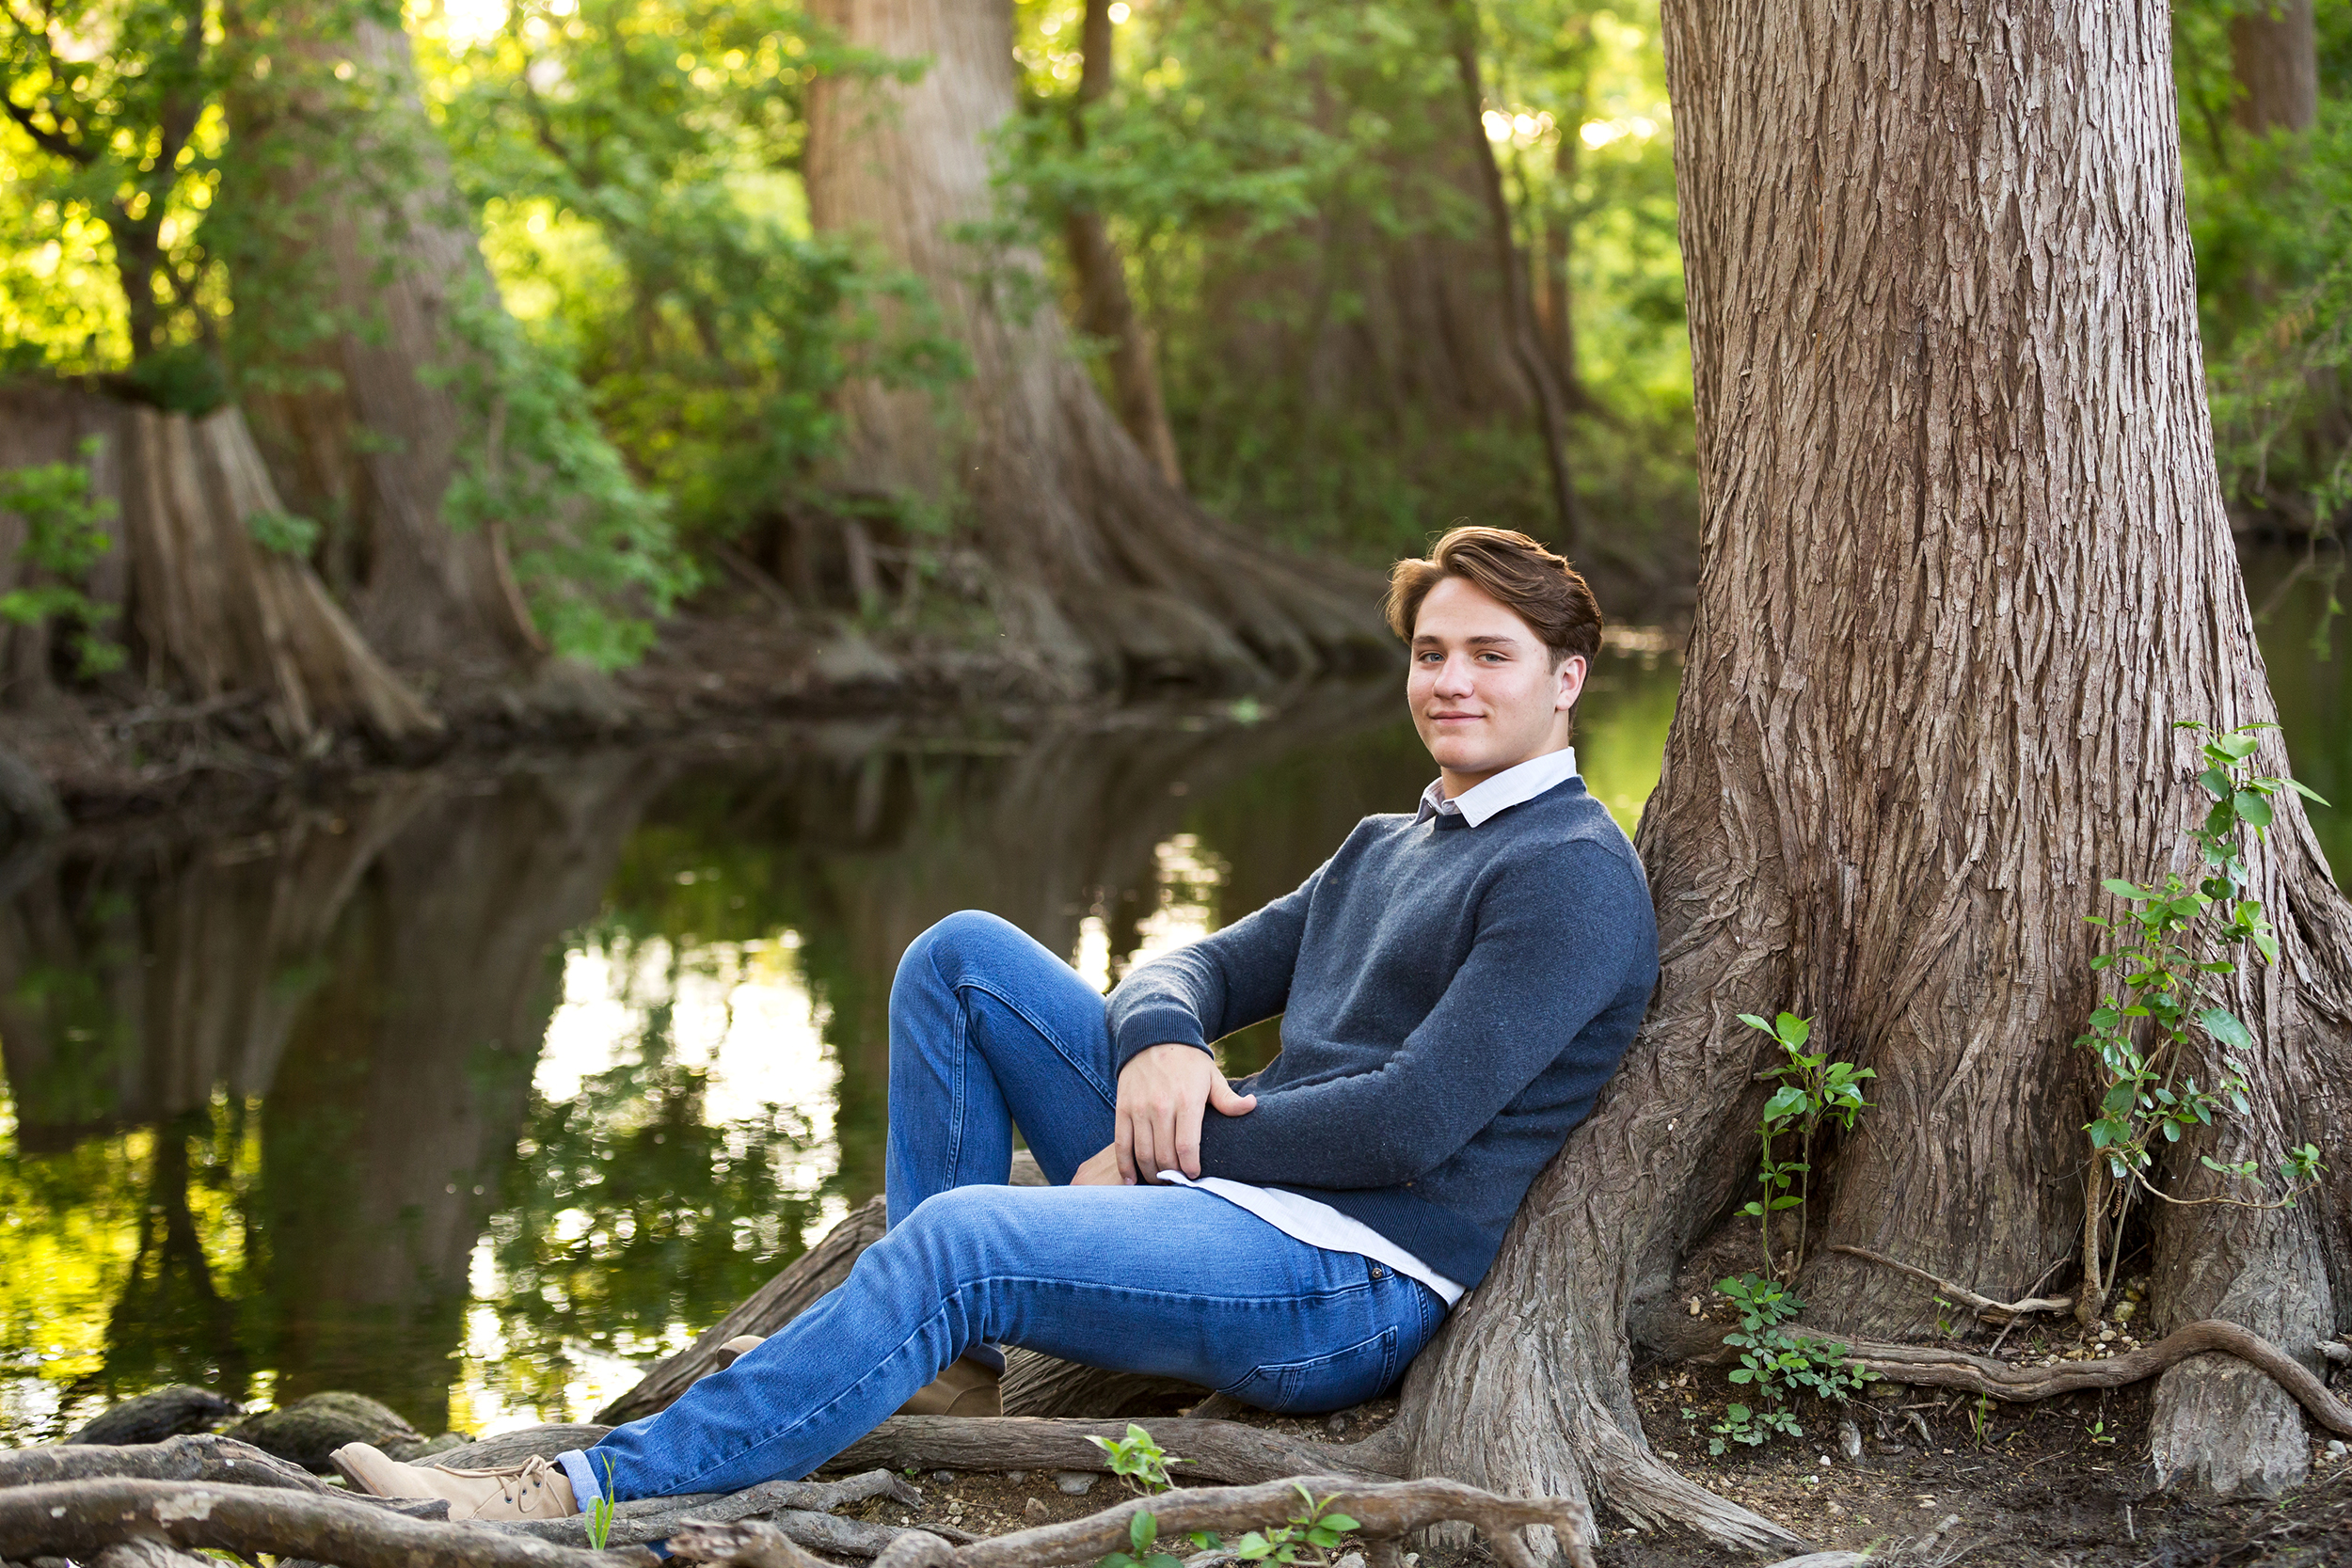 Teen-boy-river-sitting-treeroots.jpg